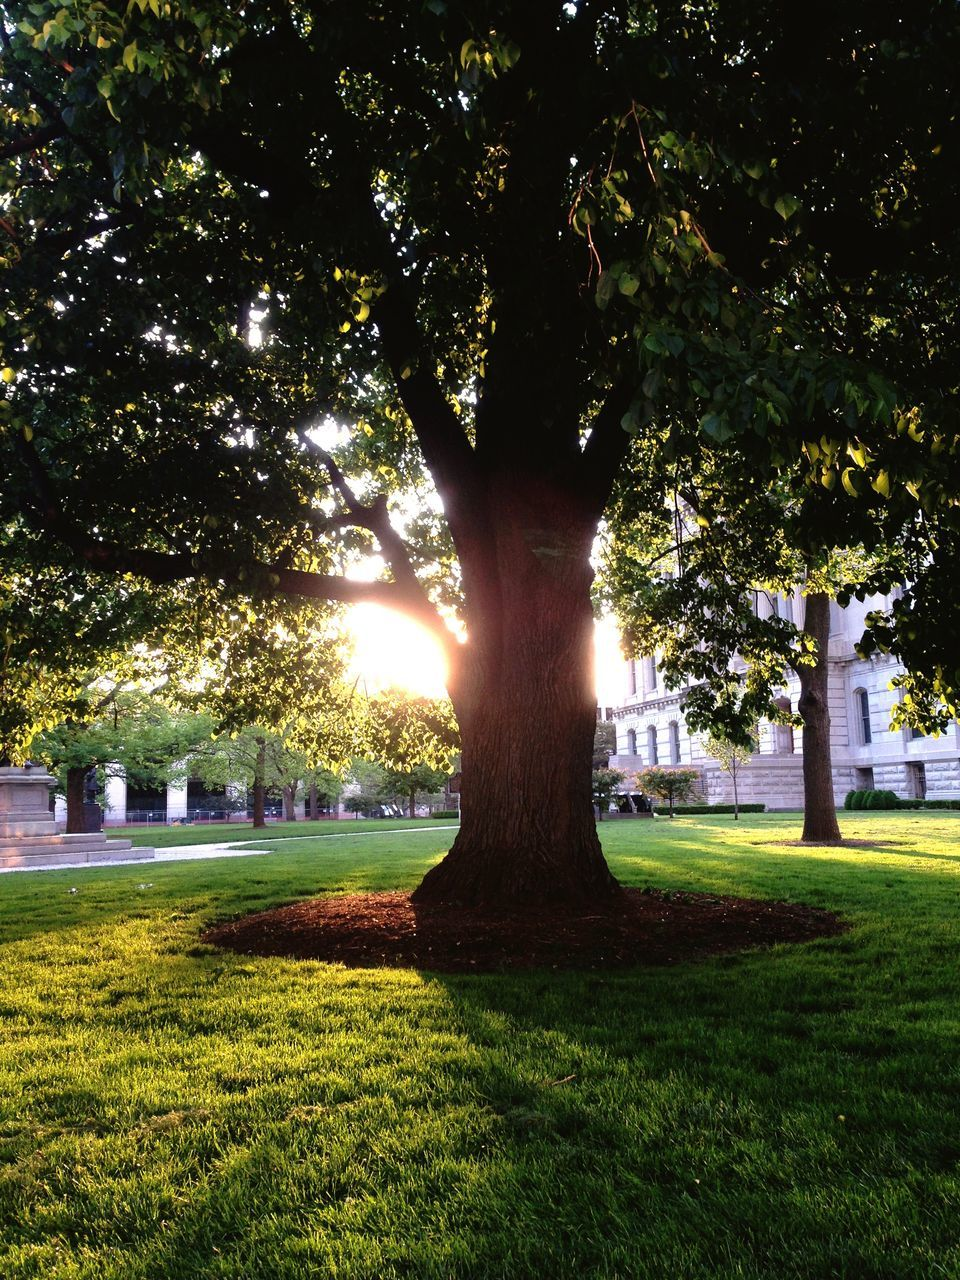 tree, grass, tree trunk, growth, sunlight, branch, park - man made space, green color, tranquility, sunbeam, park, nature, tranquil scene, field, beauty in nature, lawn, day, growing, scenics, outdoors, grassy, garden, back lit, no people, solitude, grass area